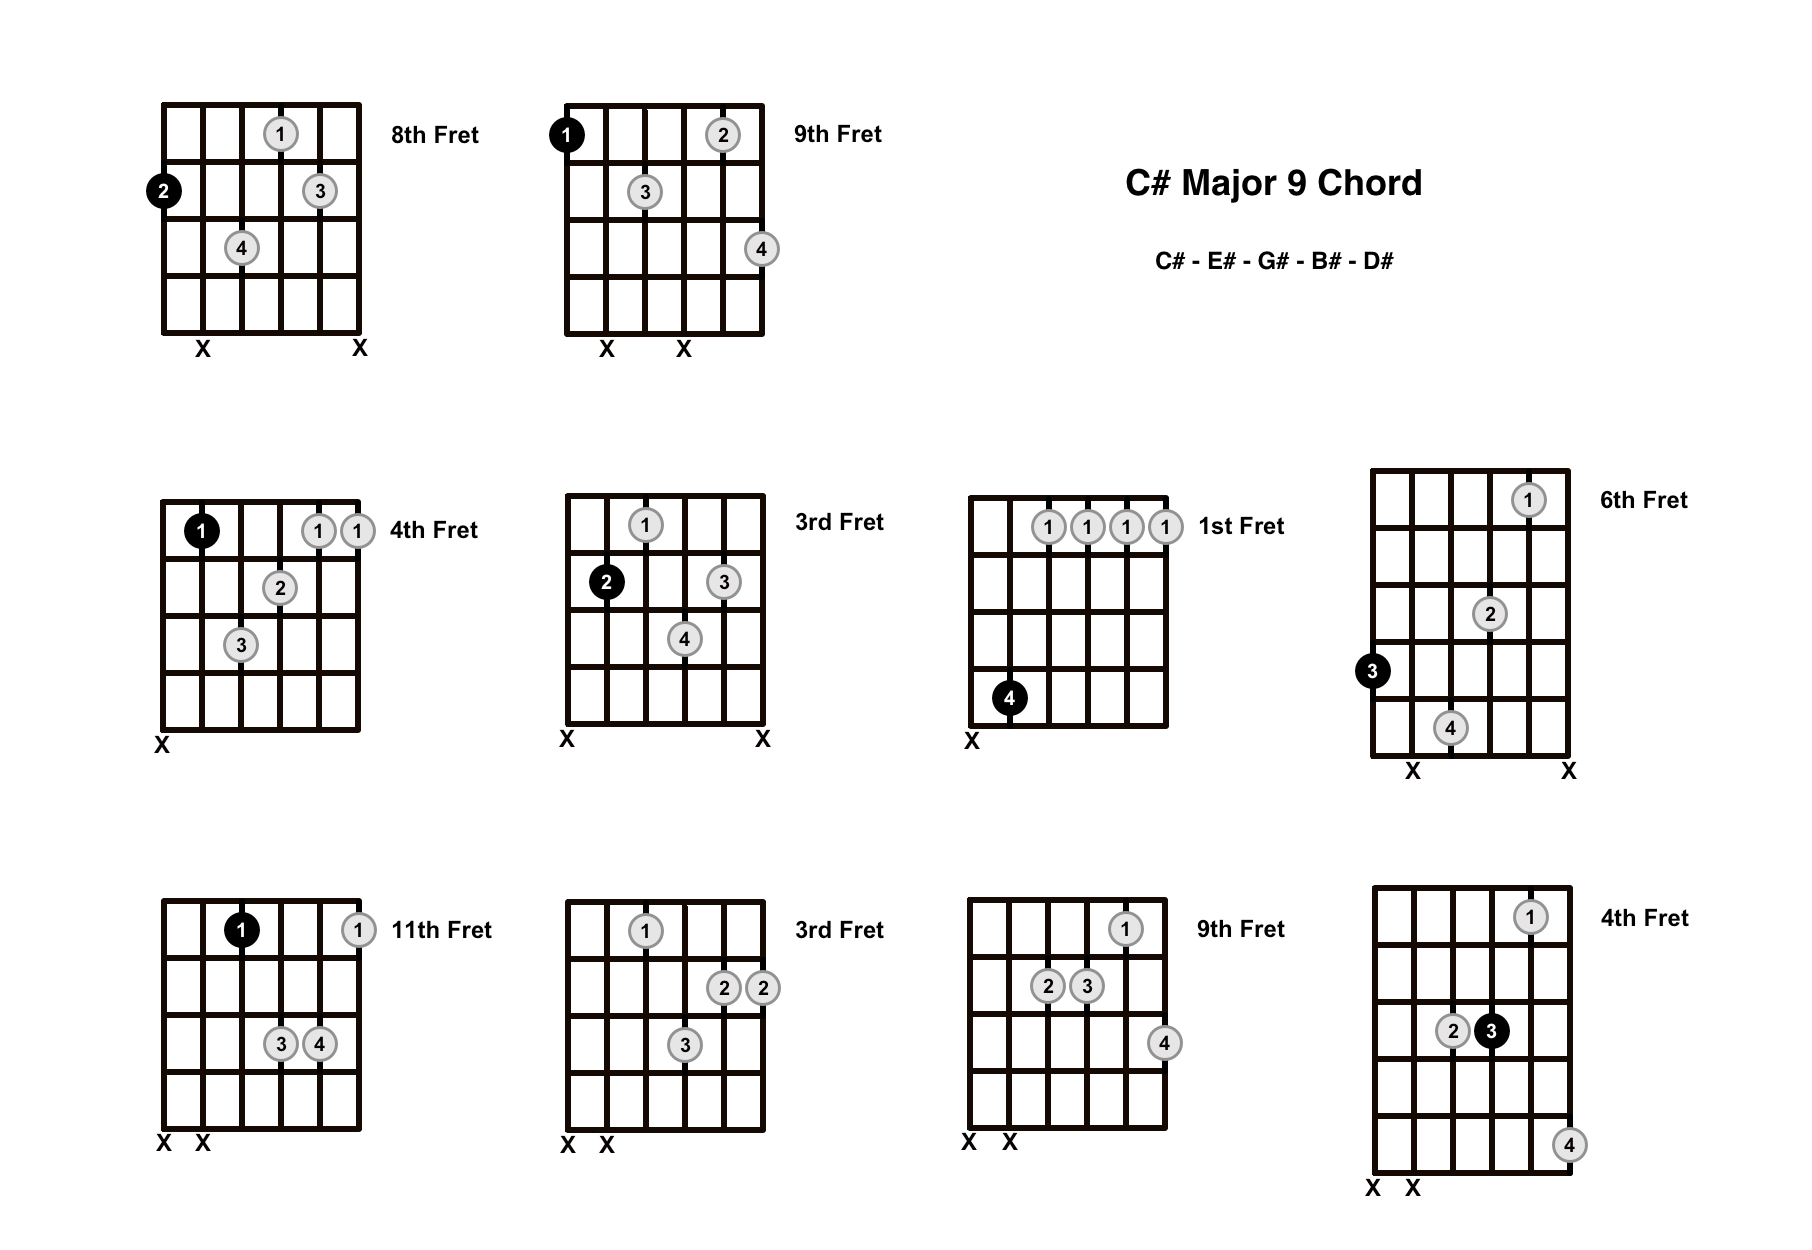 C Sharp Major 9 Chord On The Guitar (C# Maj 9) – Diagrams, Finger Positions and Theory